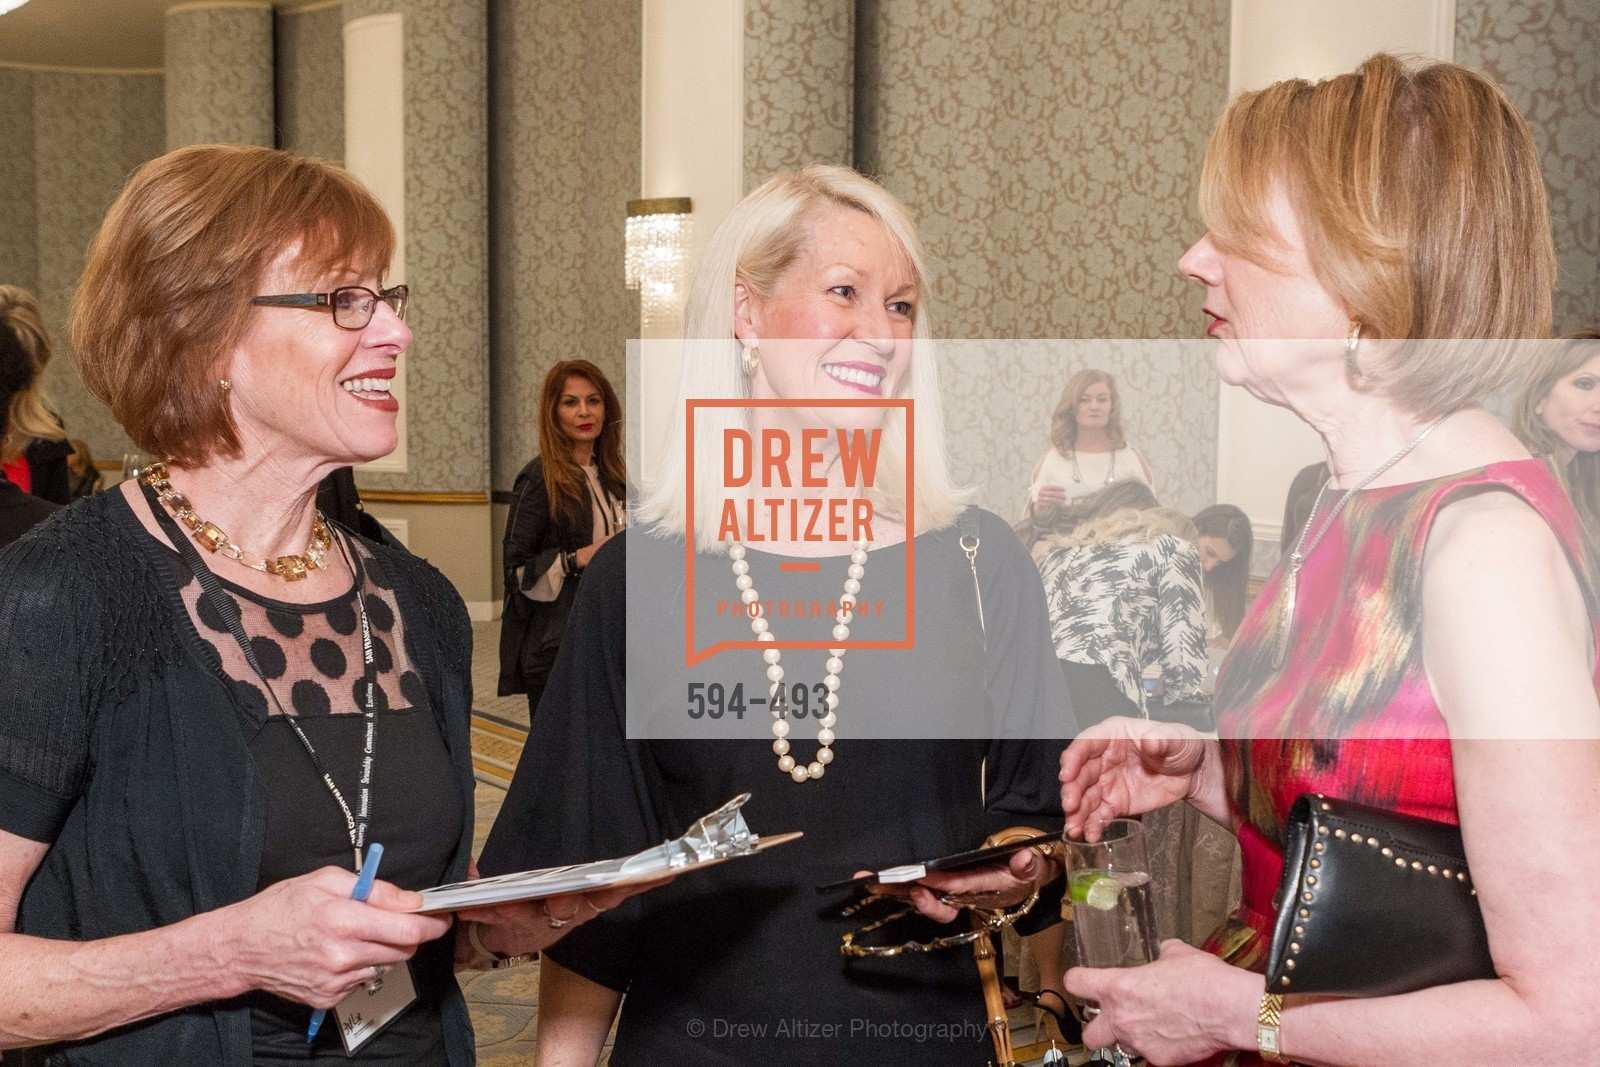 Bettina Graf, Joan Gillette, Kate Coffino, SAN FRANCISCO BALLET AUXULIARY 2014 Fashion Show, US. The Fairmont, April 3rd, 2014,Drew Altizer, Drew Altizer Photography, full-service agency, private events, San Francisco photographer, photographer california